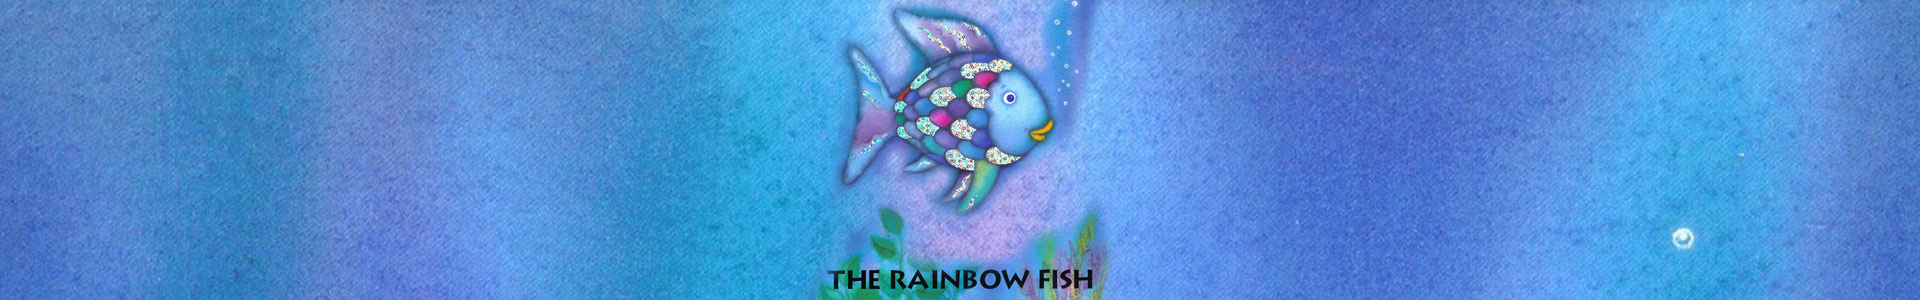 The-Rainbow-Fish